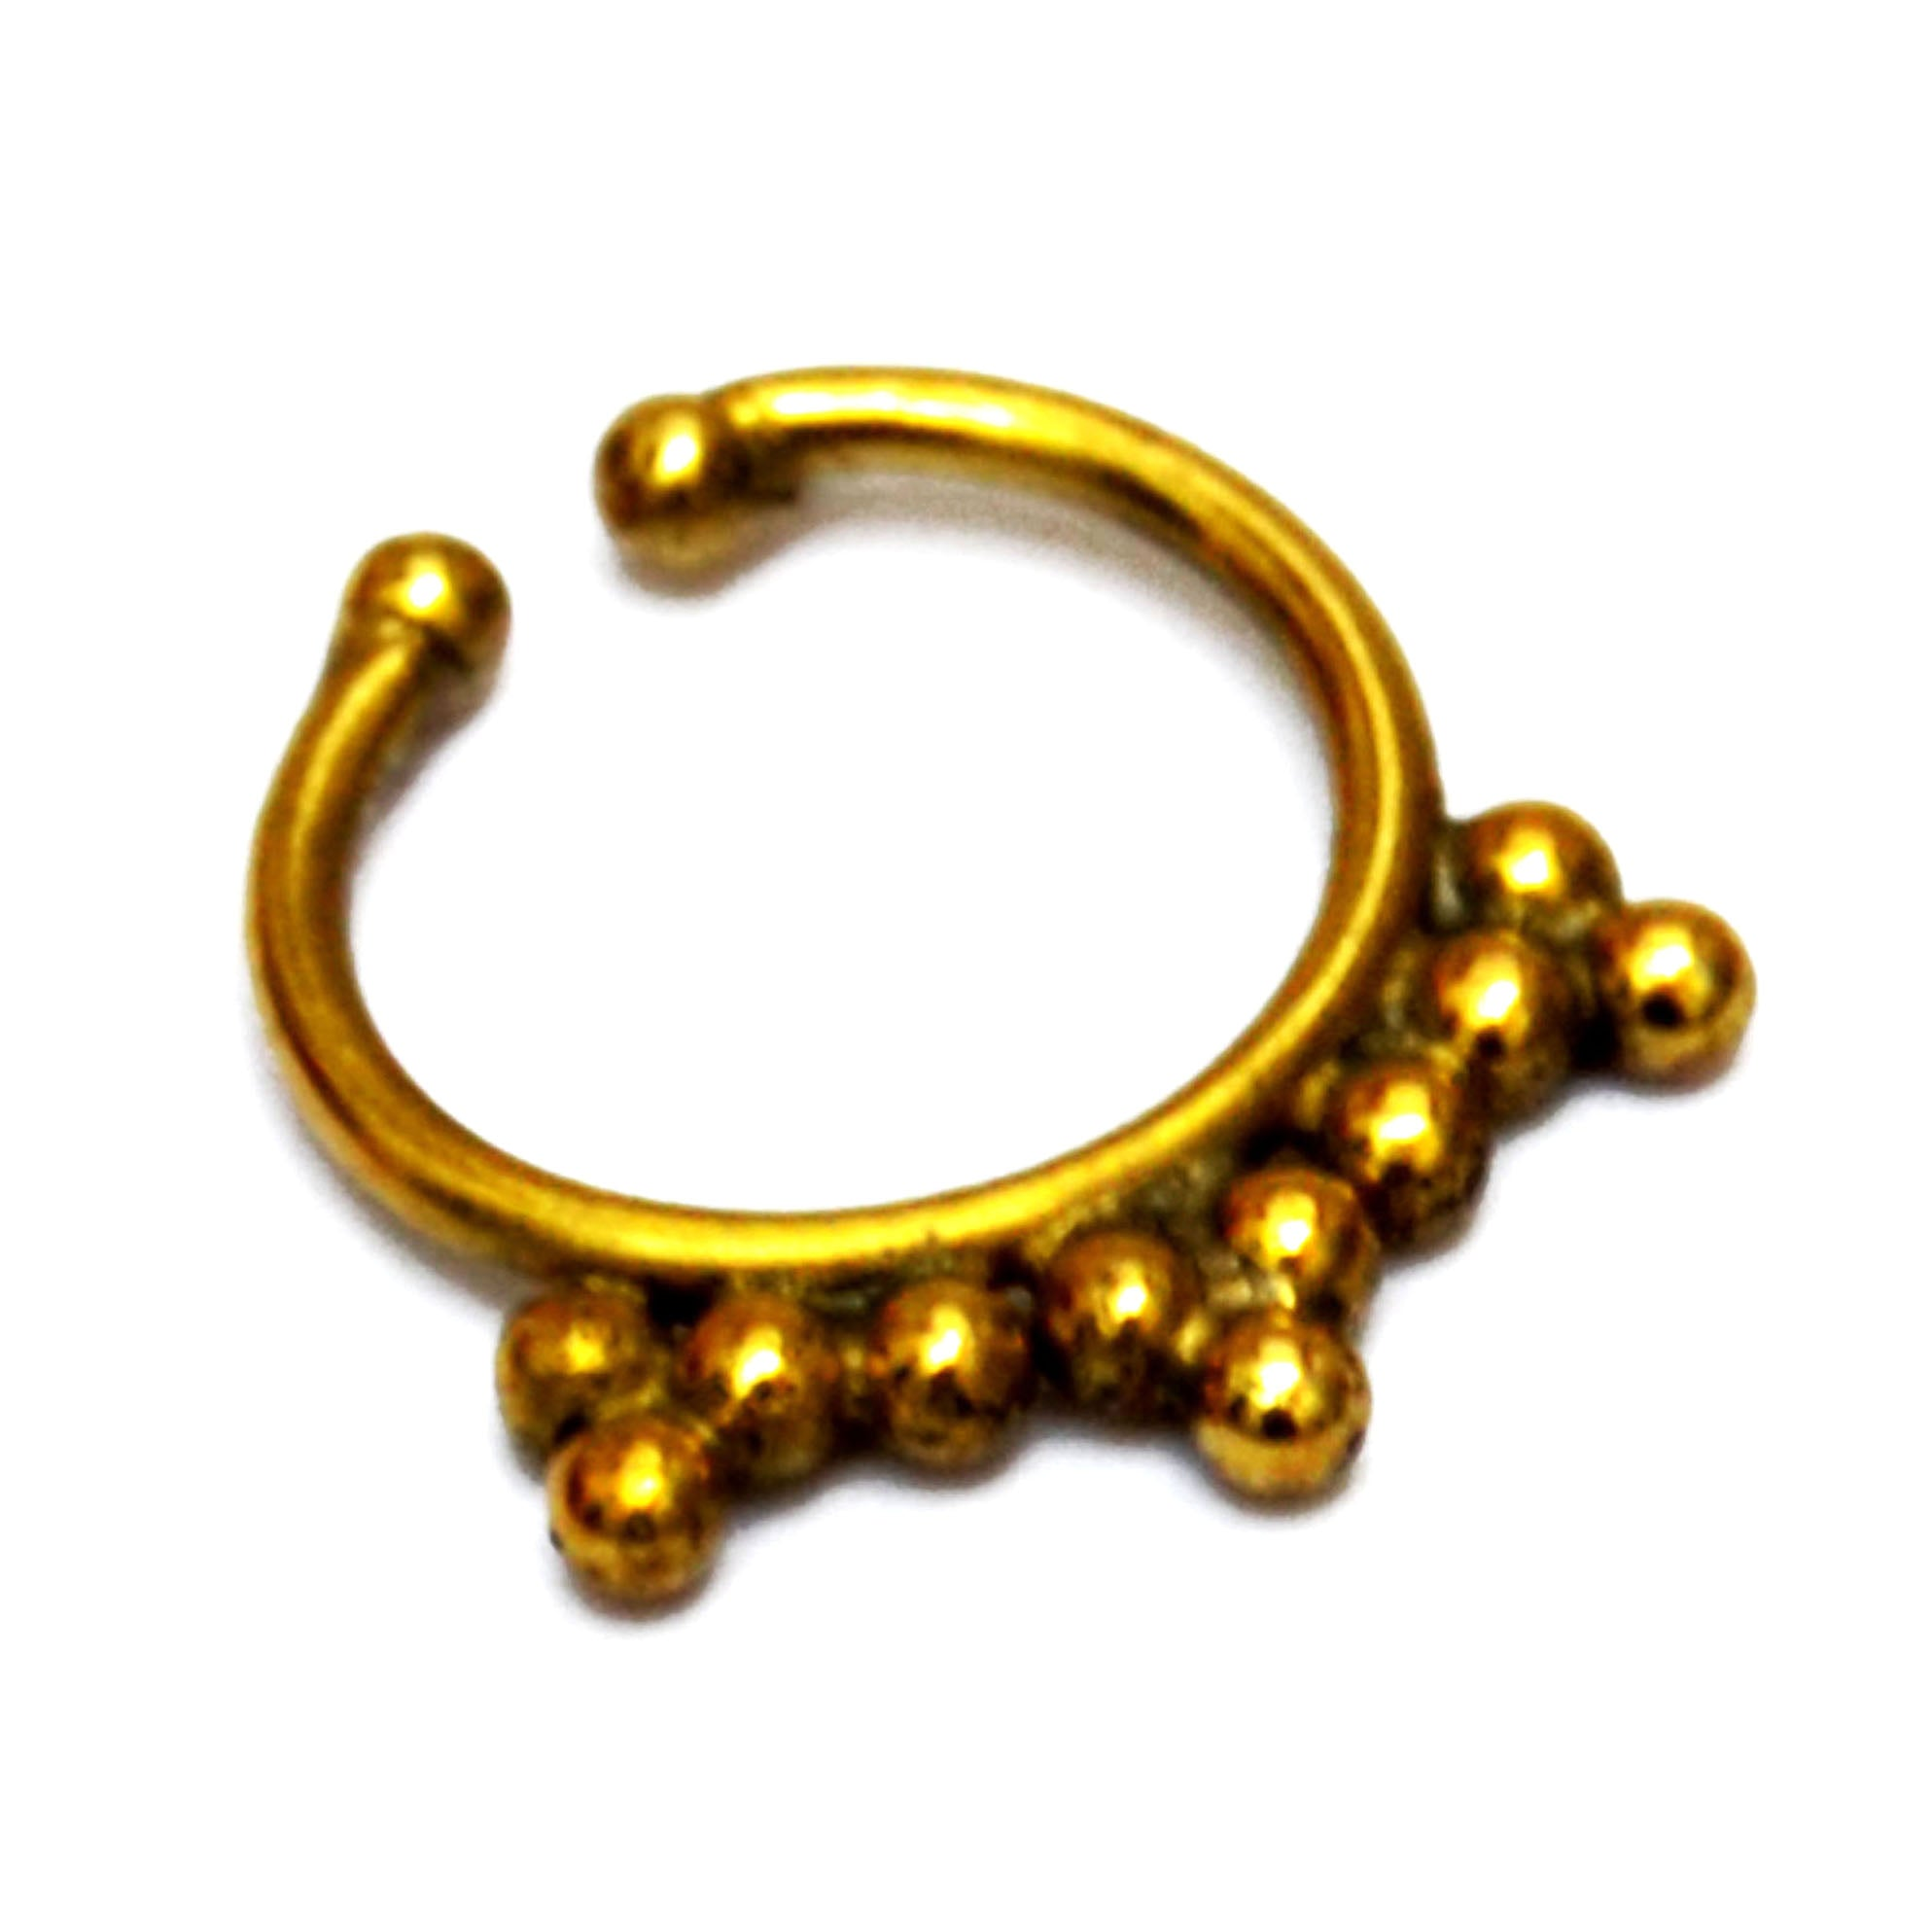 Fake gold nose ring